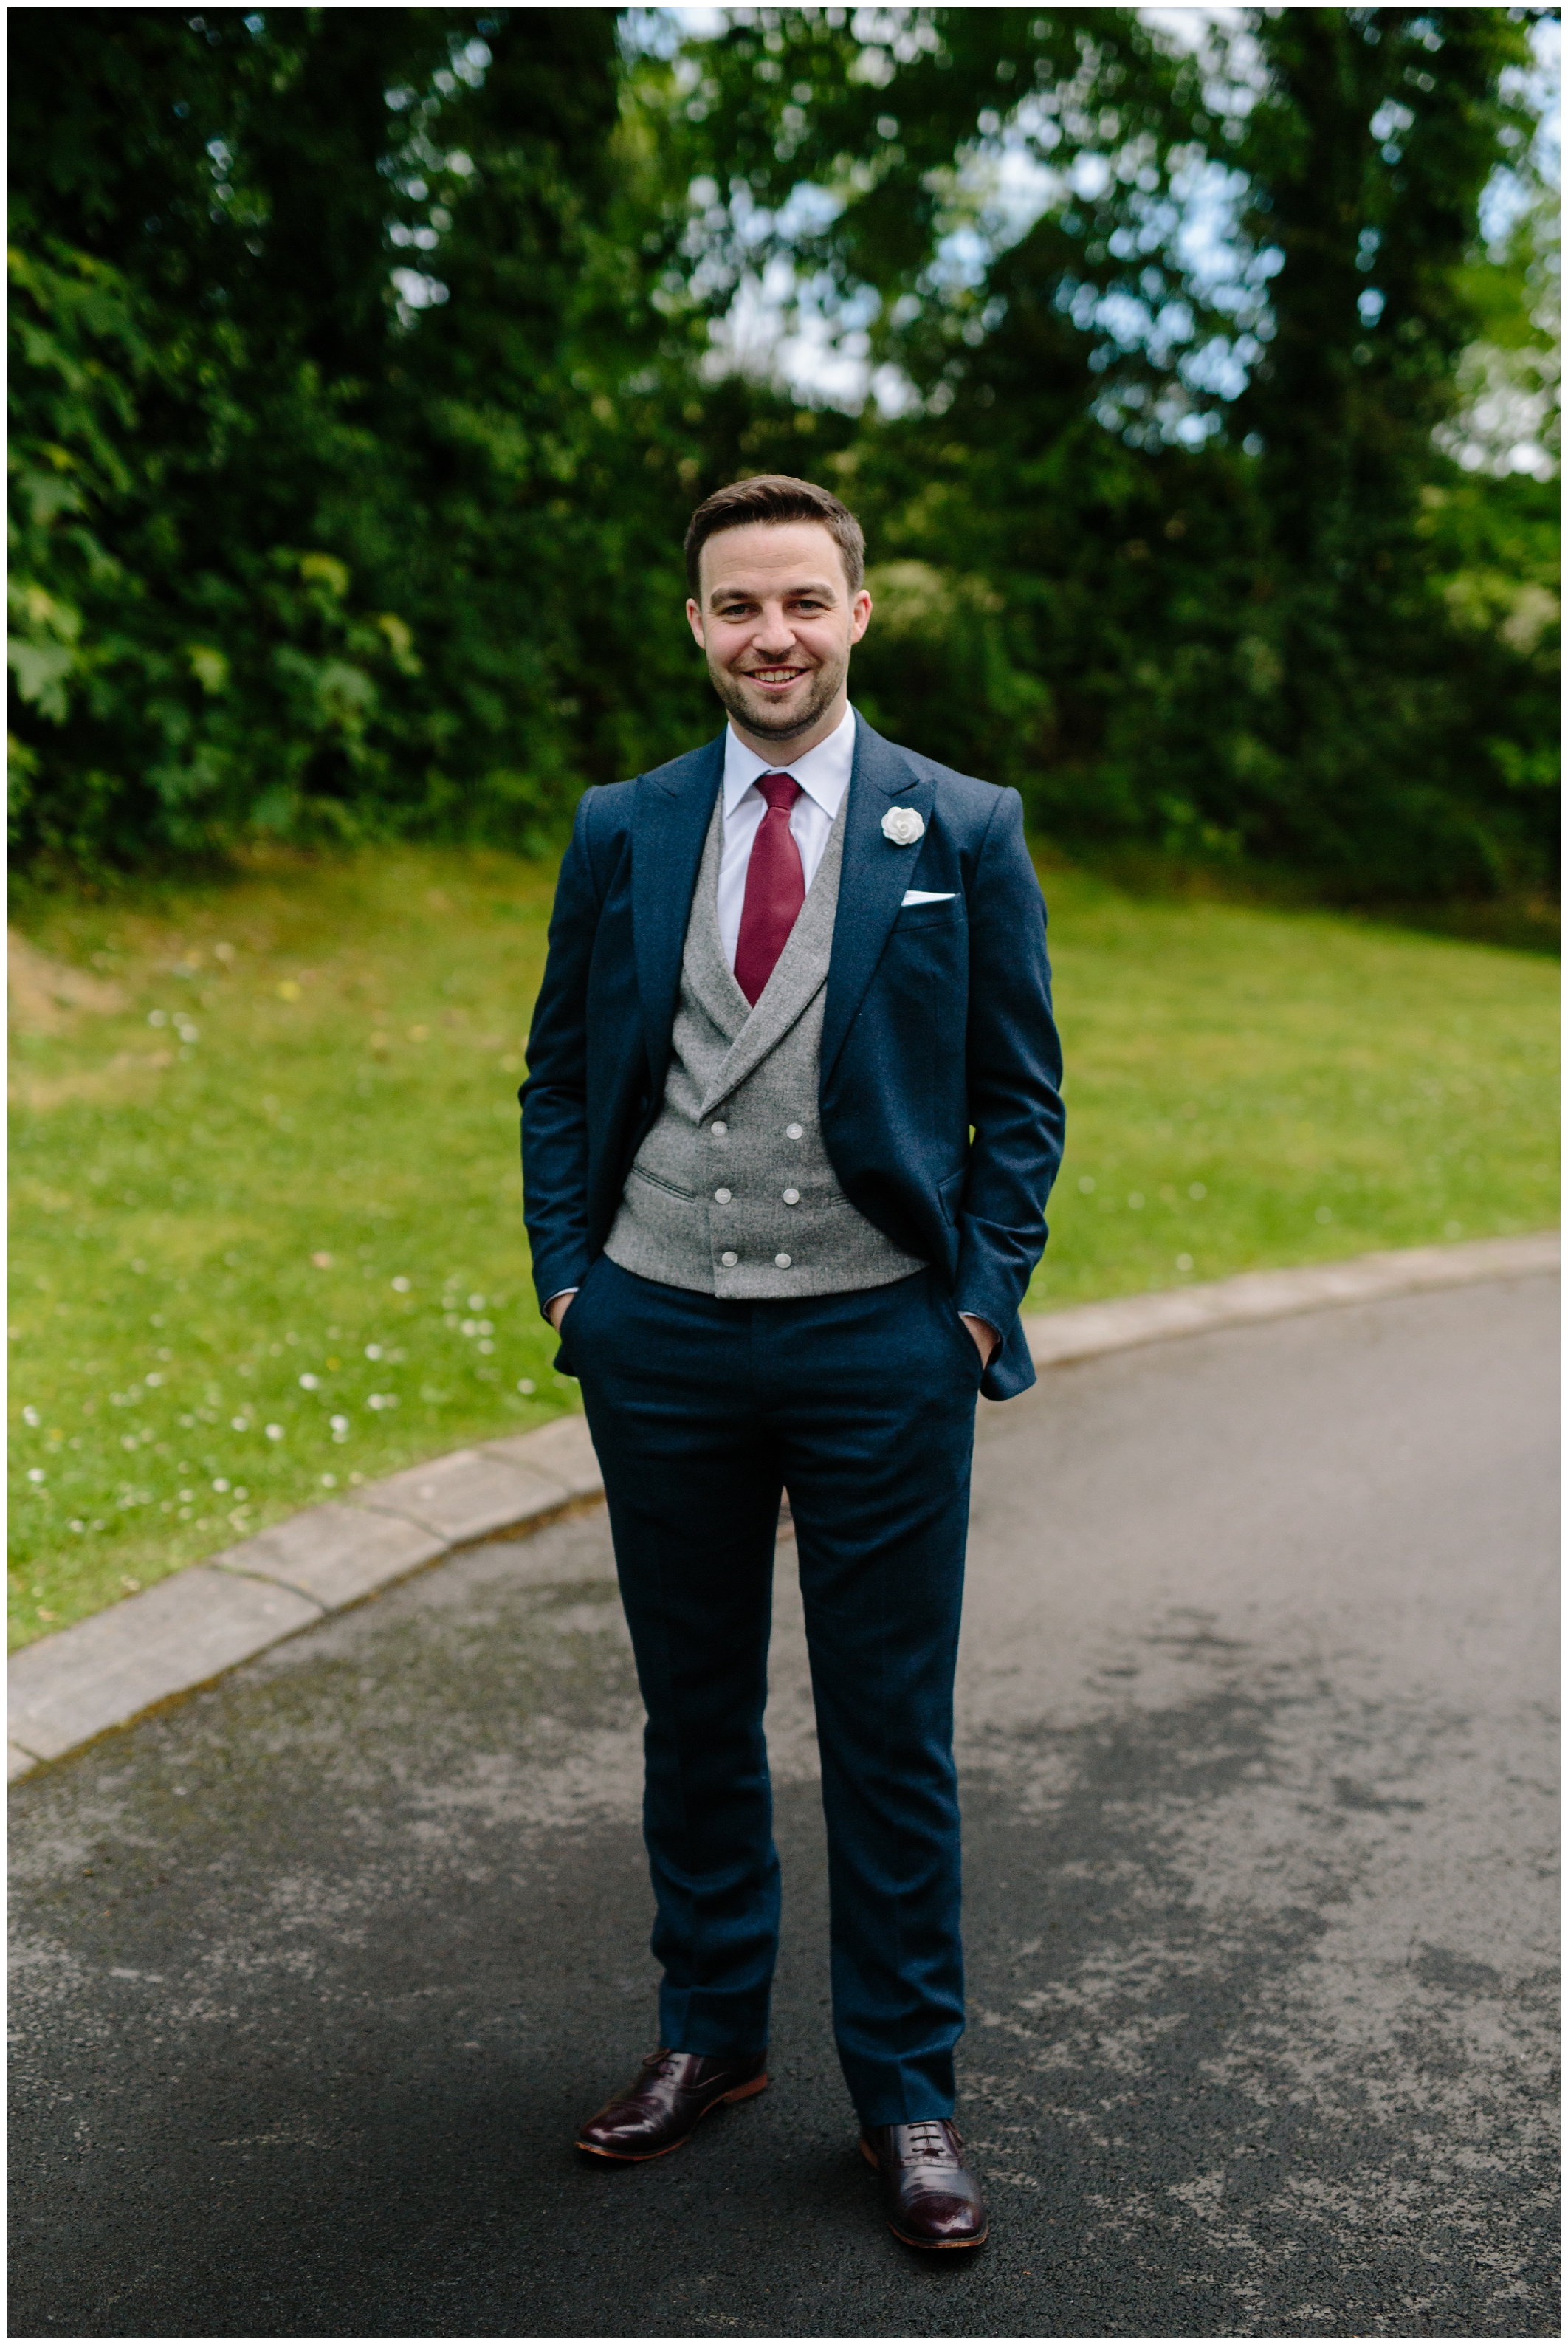 sinead_emmet_farnham_estate_wedding_jude_browne_photography_0048.jpg